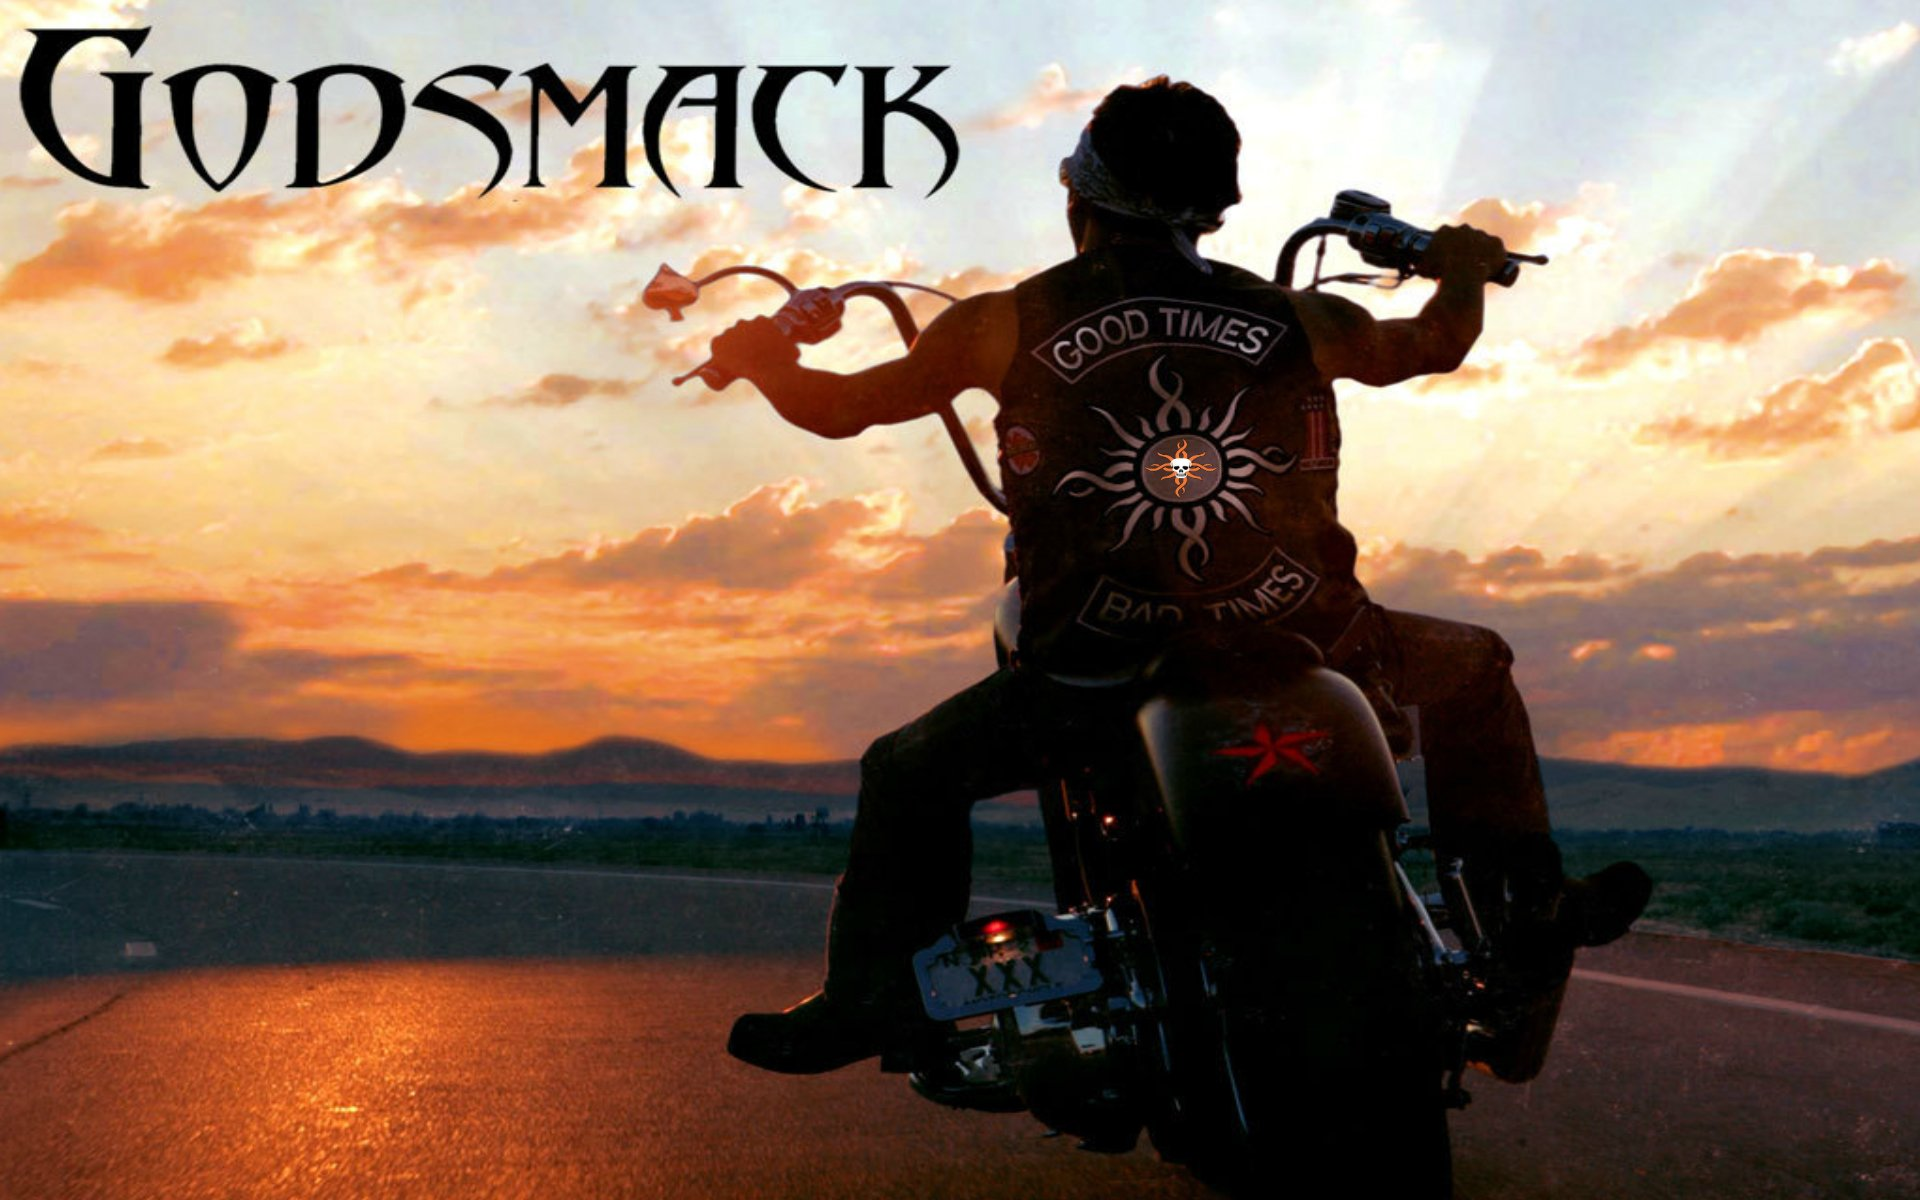 Cool Wallpapers Hd Iphone 7 Godsmack Hd Wallpaper Background Image 1920x1200 Id